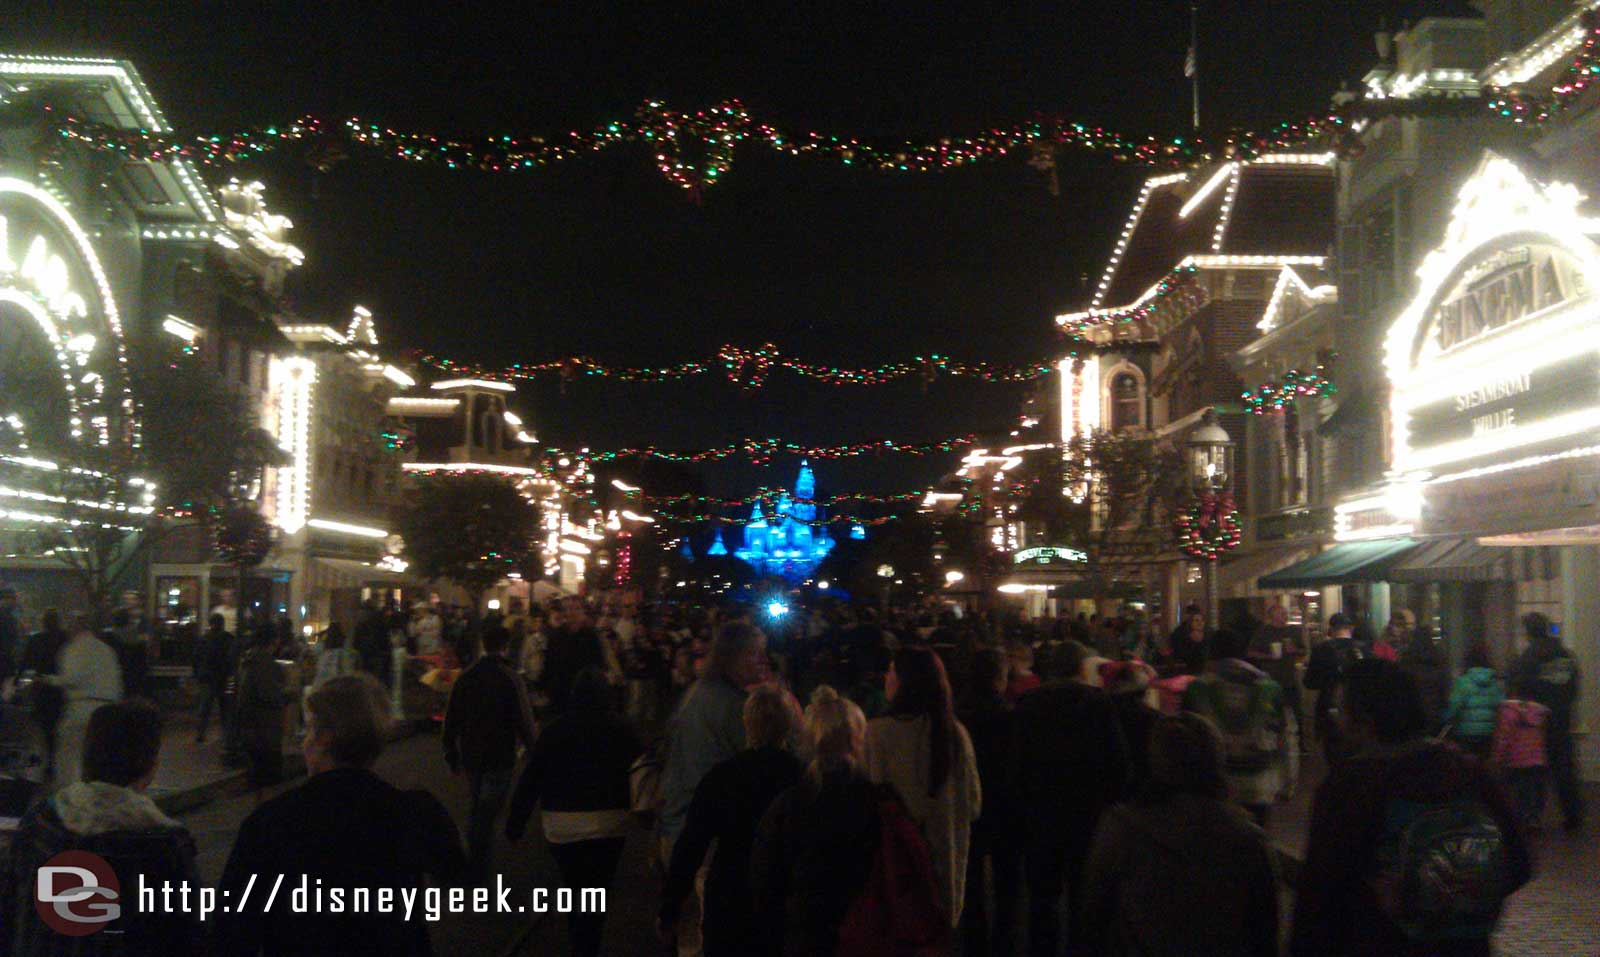 A look at Main Street USA this evening with the Christmas lights on